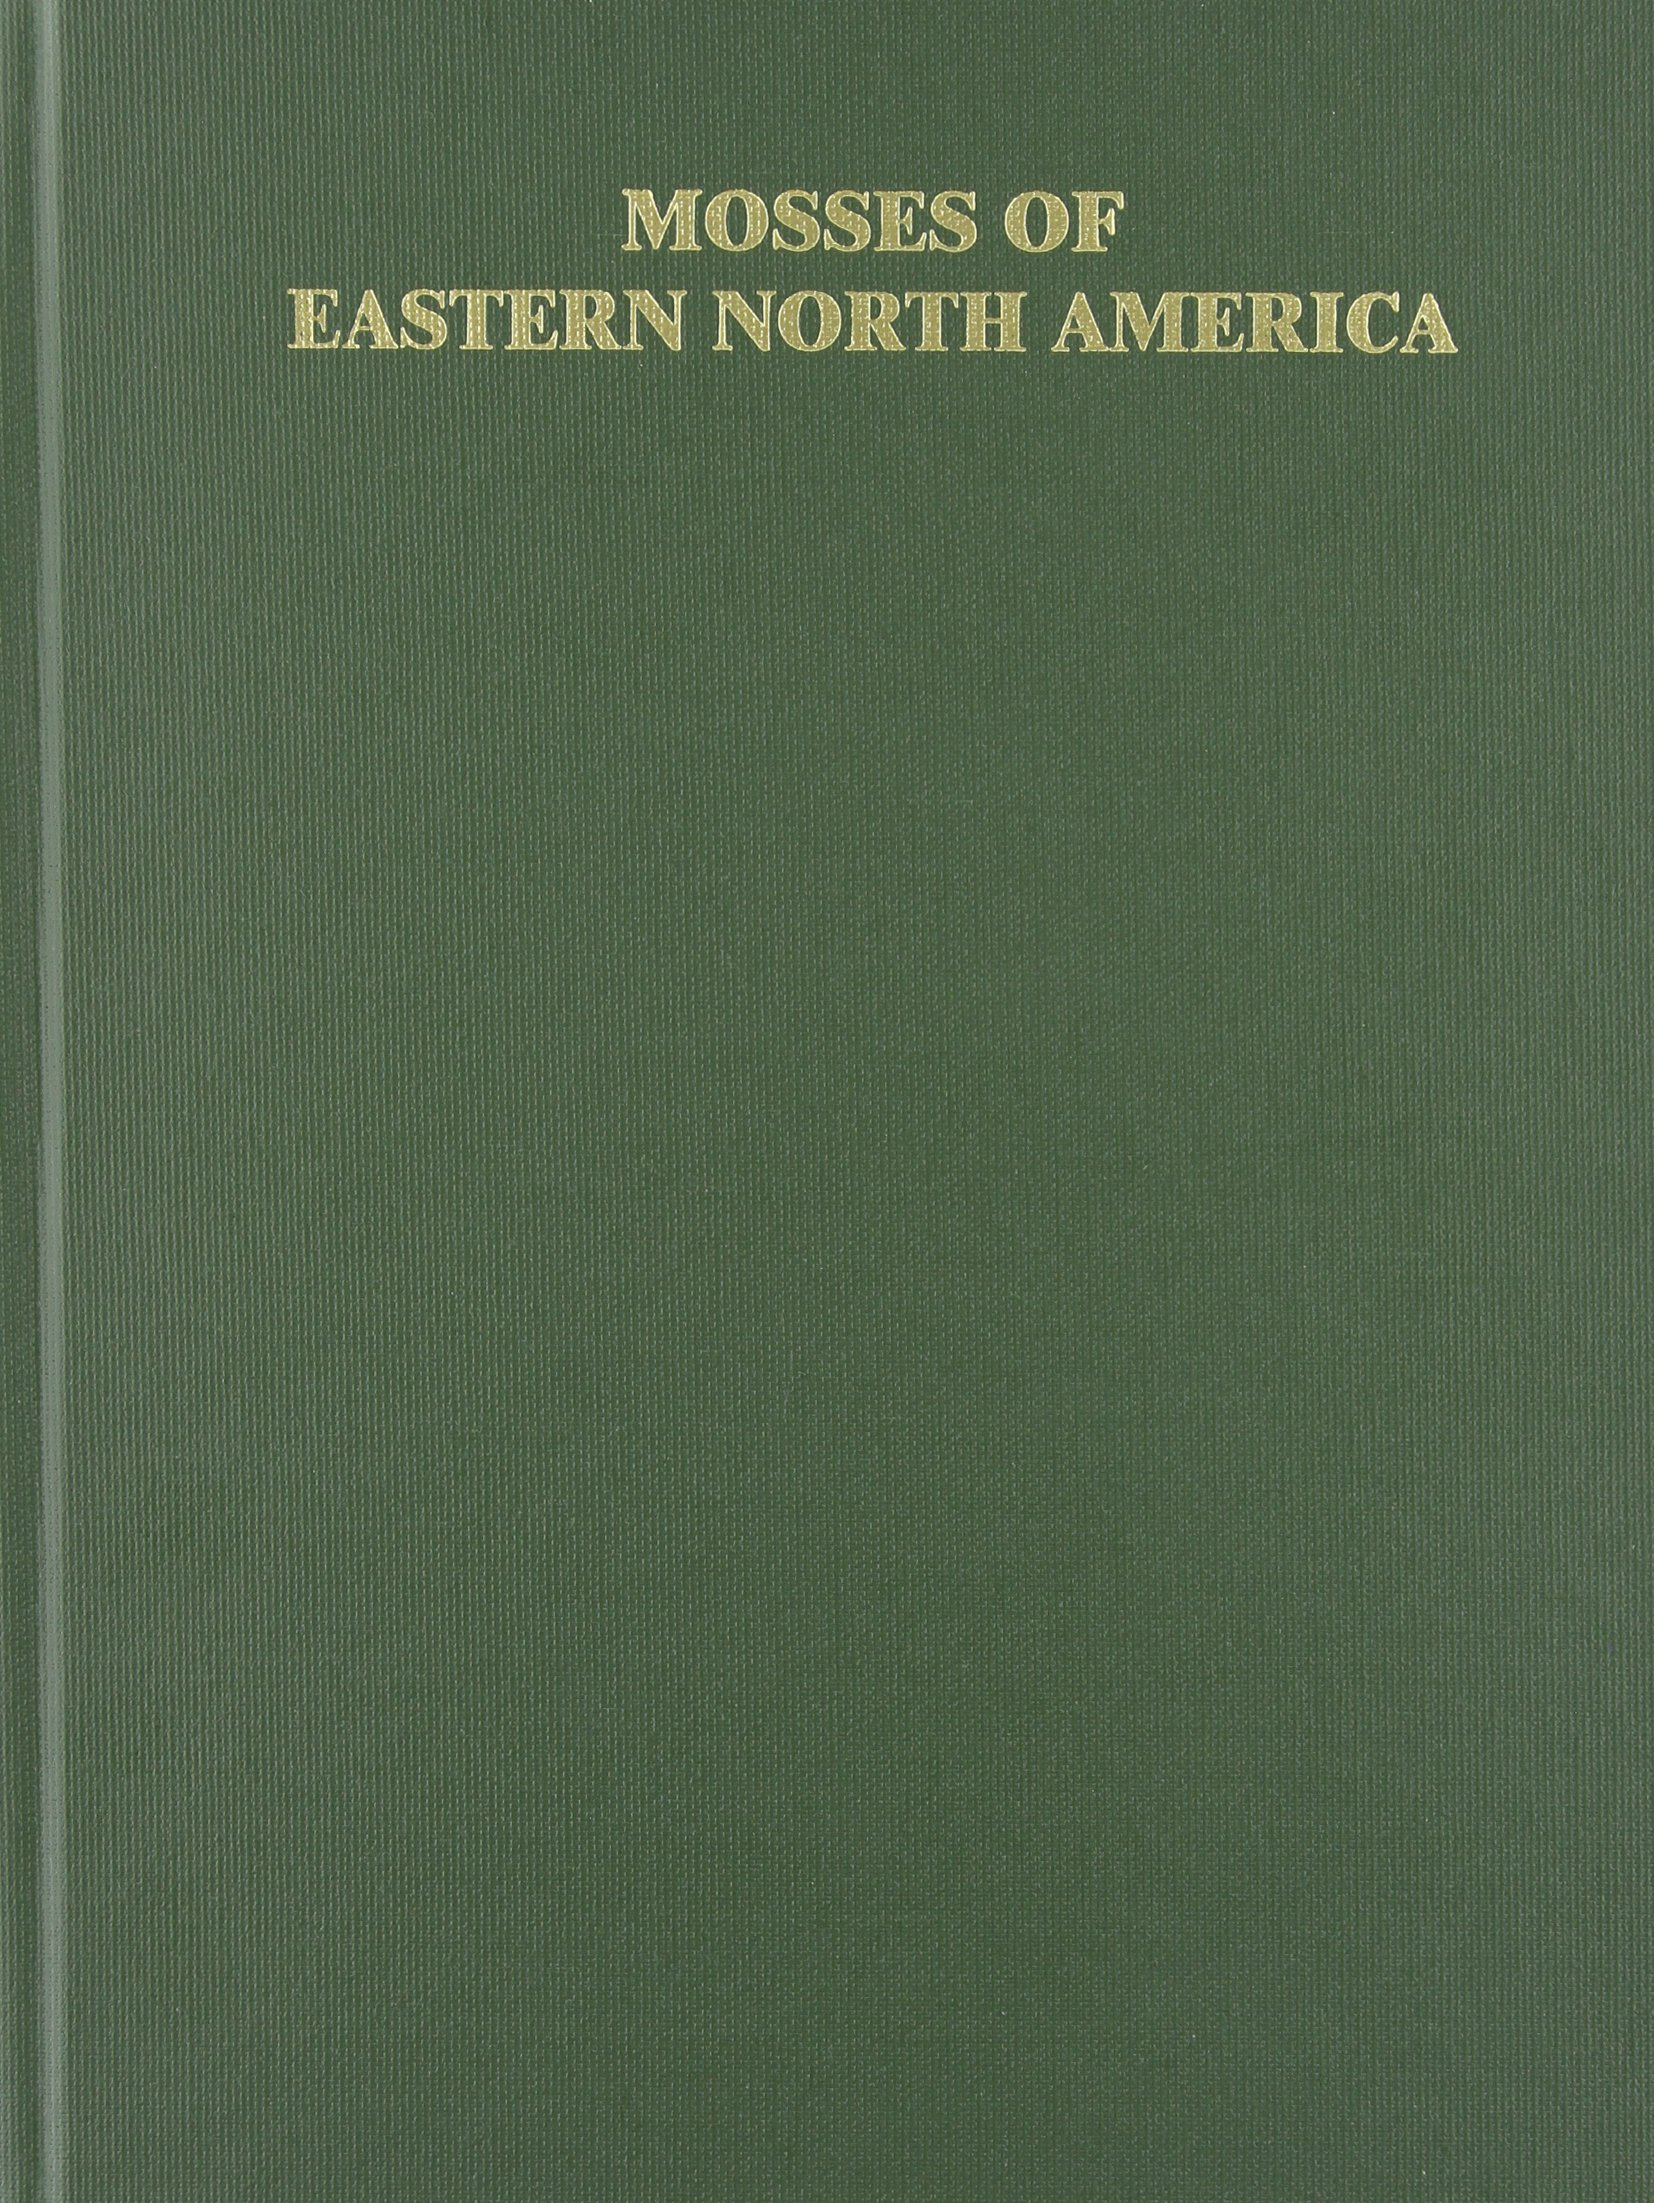 Mosses of Eastern North America (2-Volume Set) Hardcover – Mar 15 1981